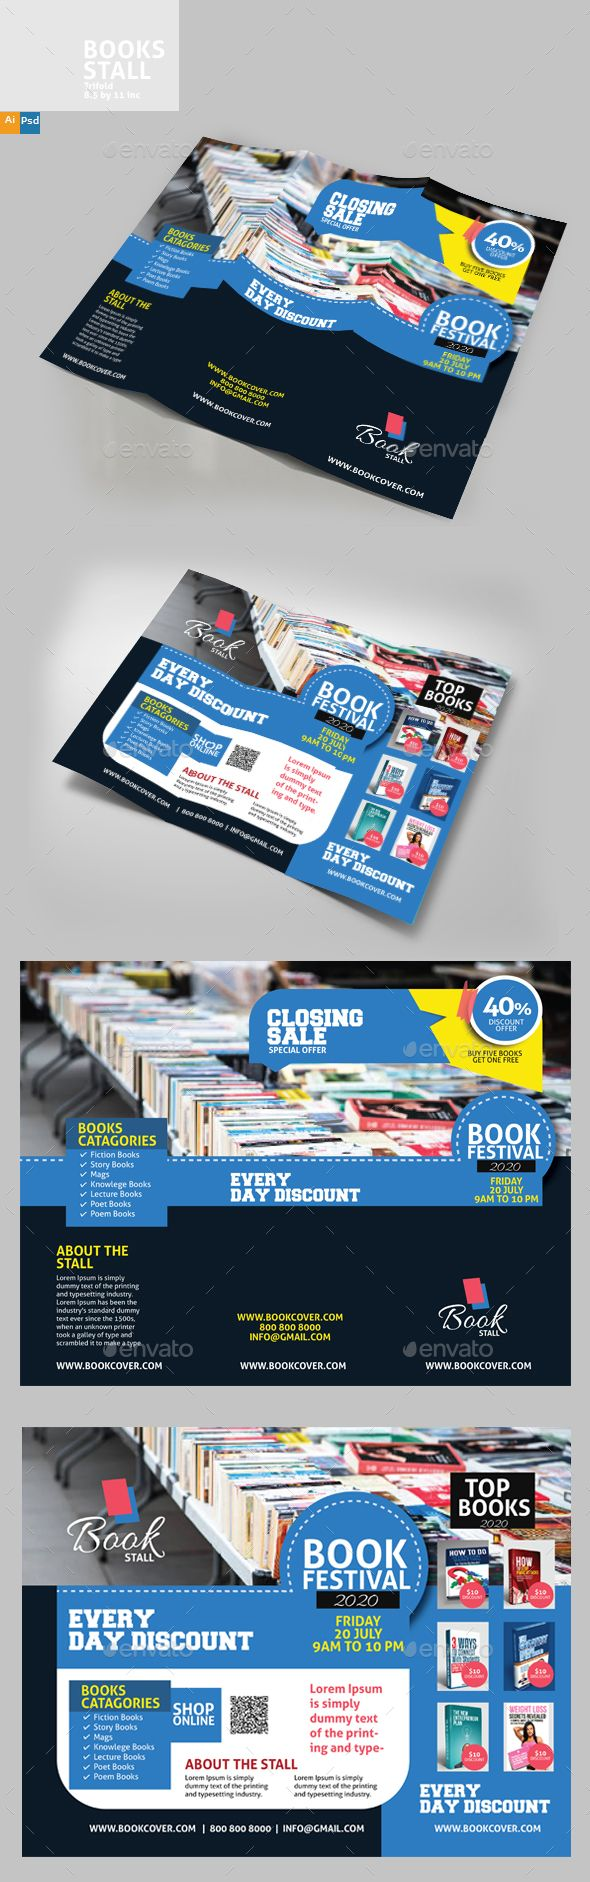 Book Stall #Brochure - #Brochures Print Templates Download here:  https://graphicriver.net/item/book-stall-brochure/20293315?ref=alena994